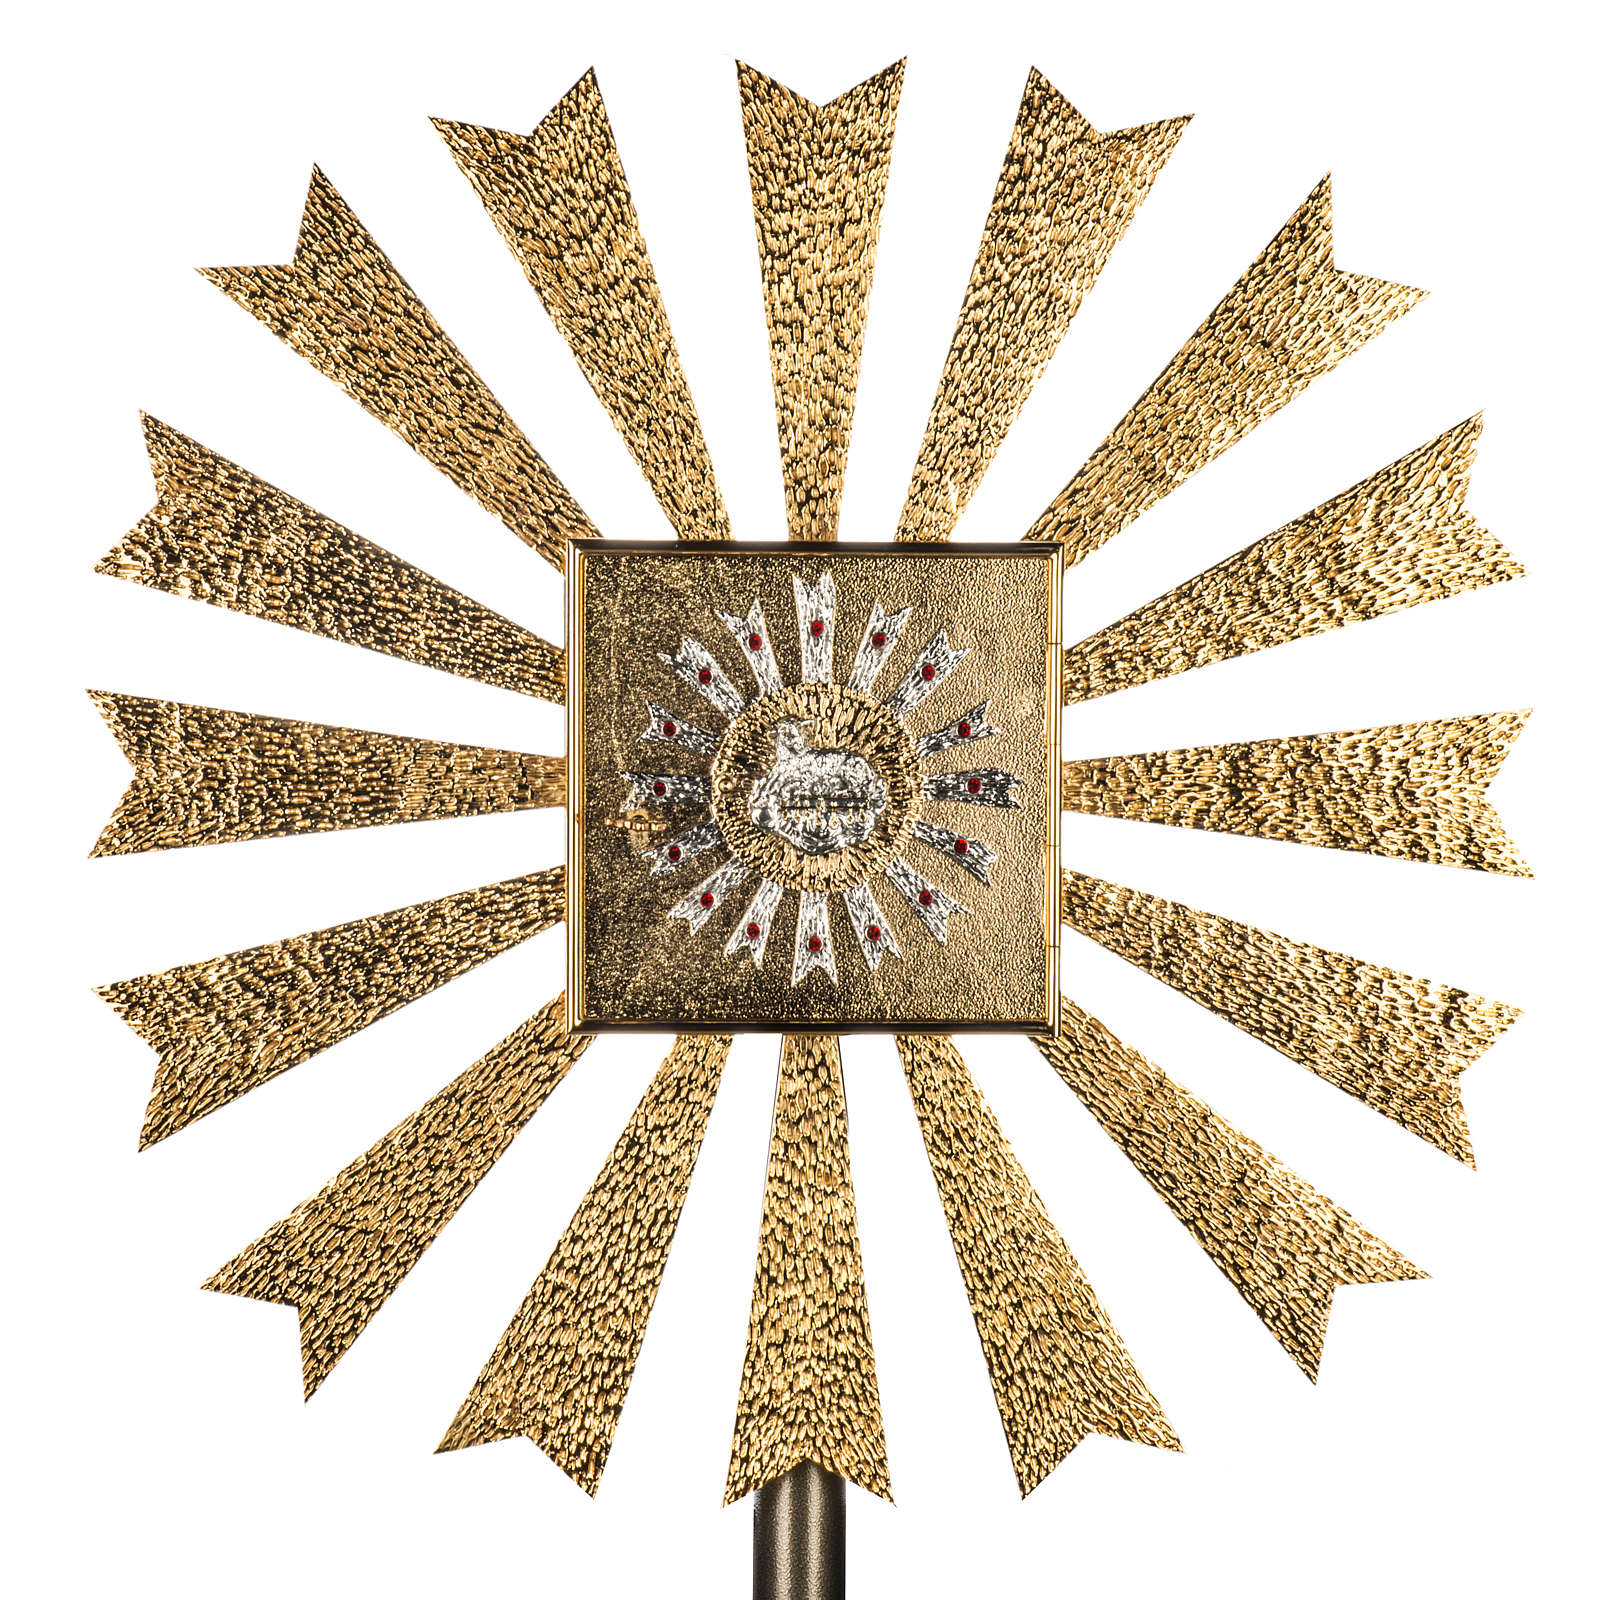 Wall Tabernacle with Lamb of God and halo of rays 4